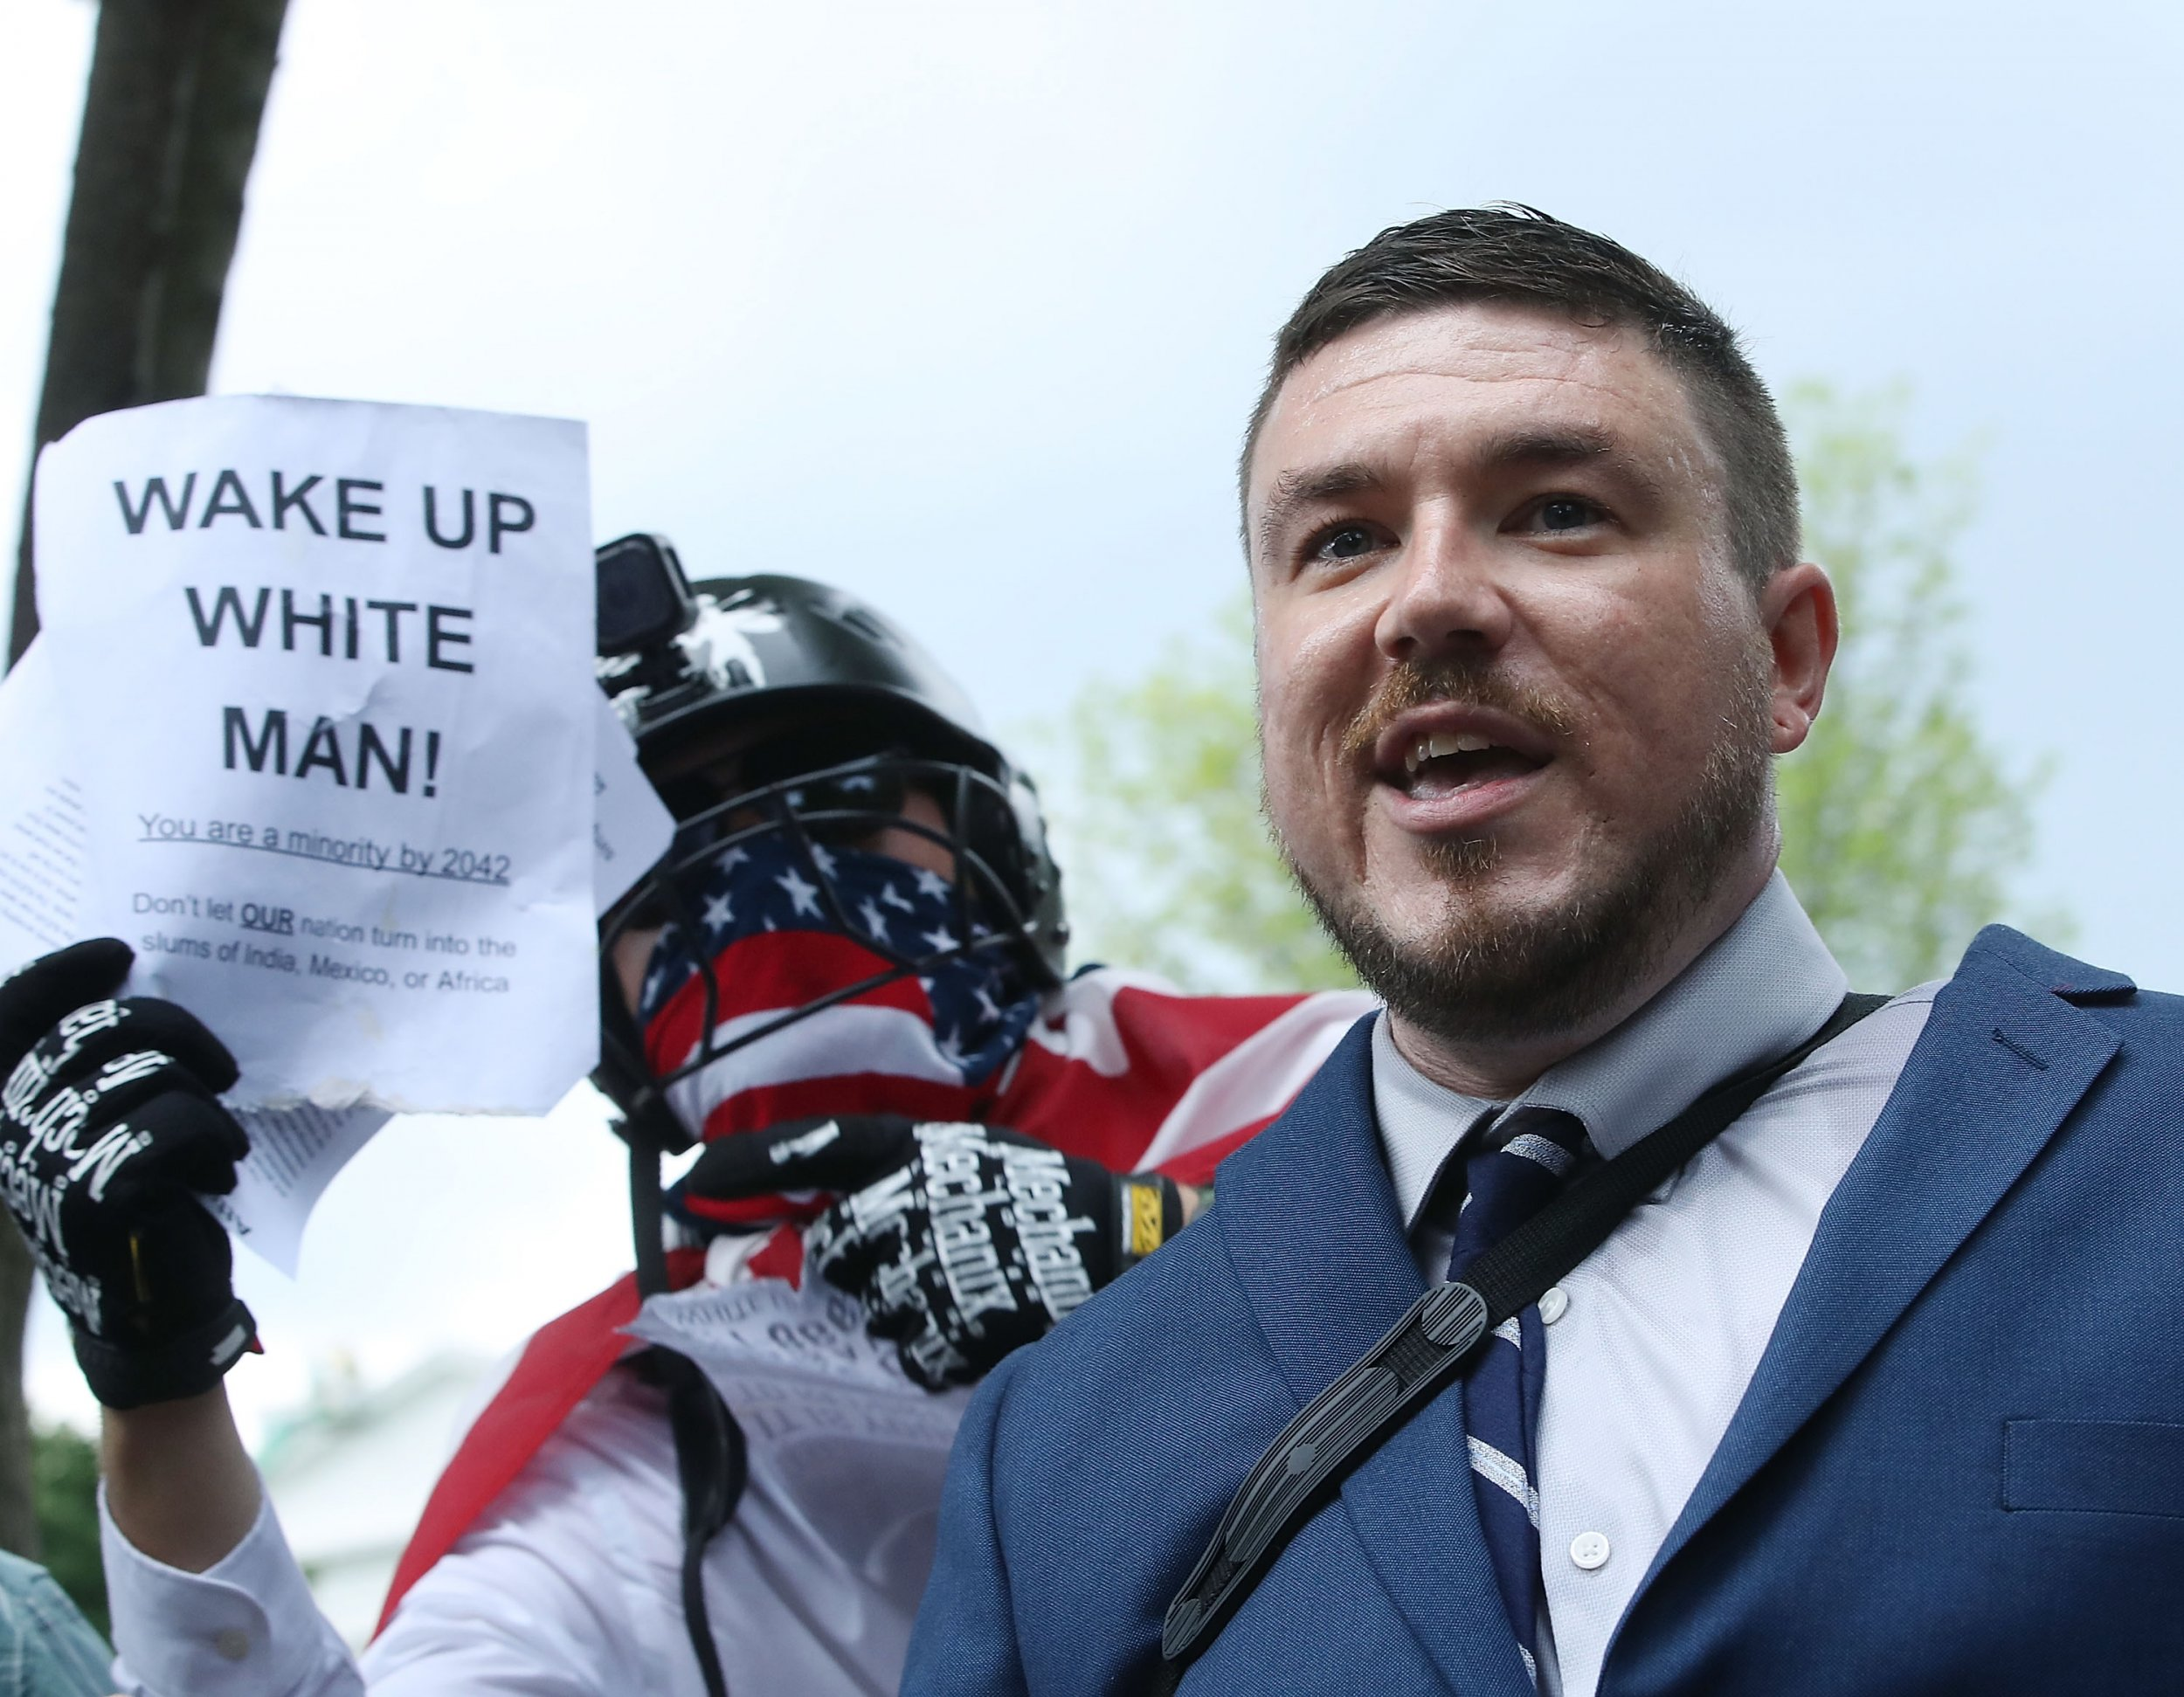 Jason Kessler unite the right dad recording